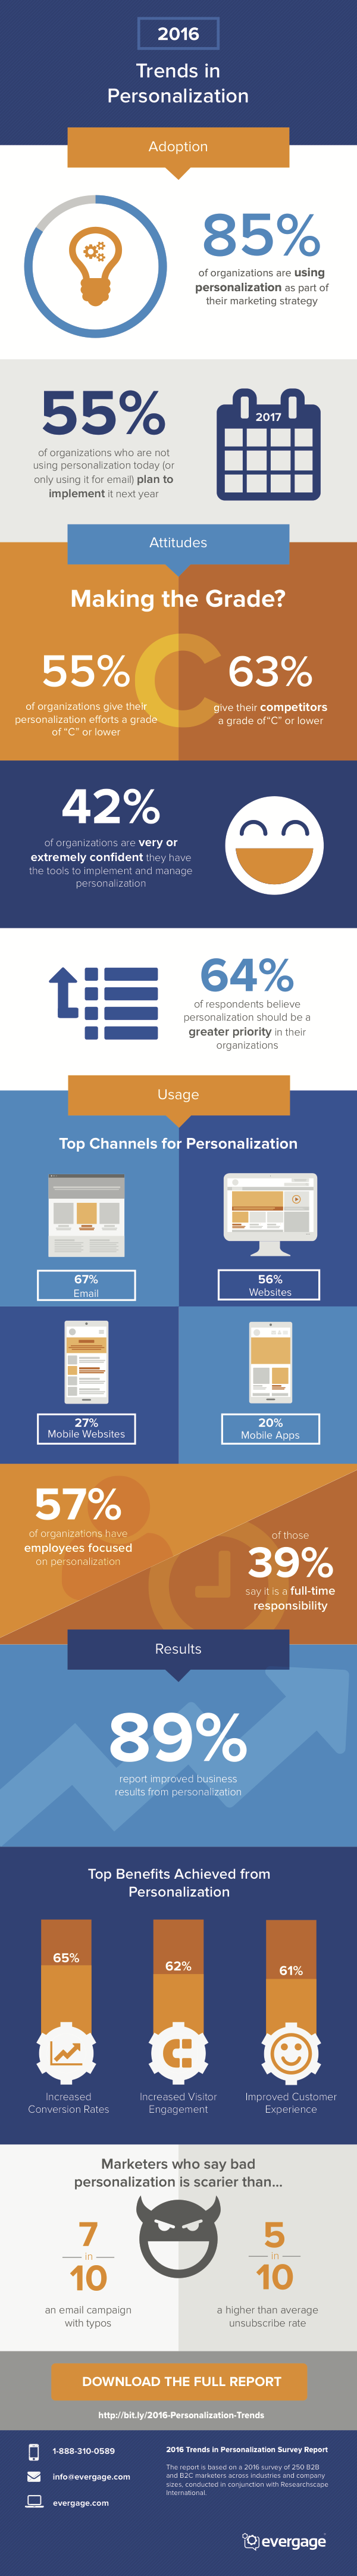 2016 Personalization Trends Infographic